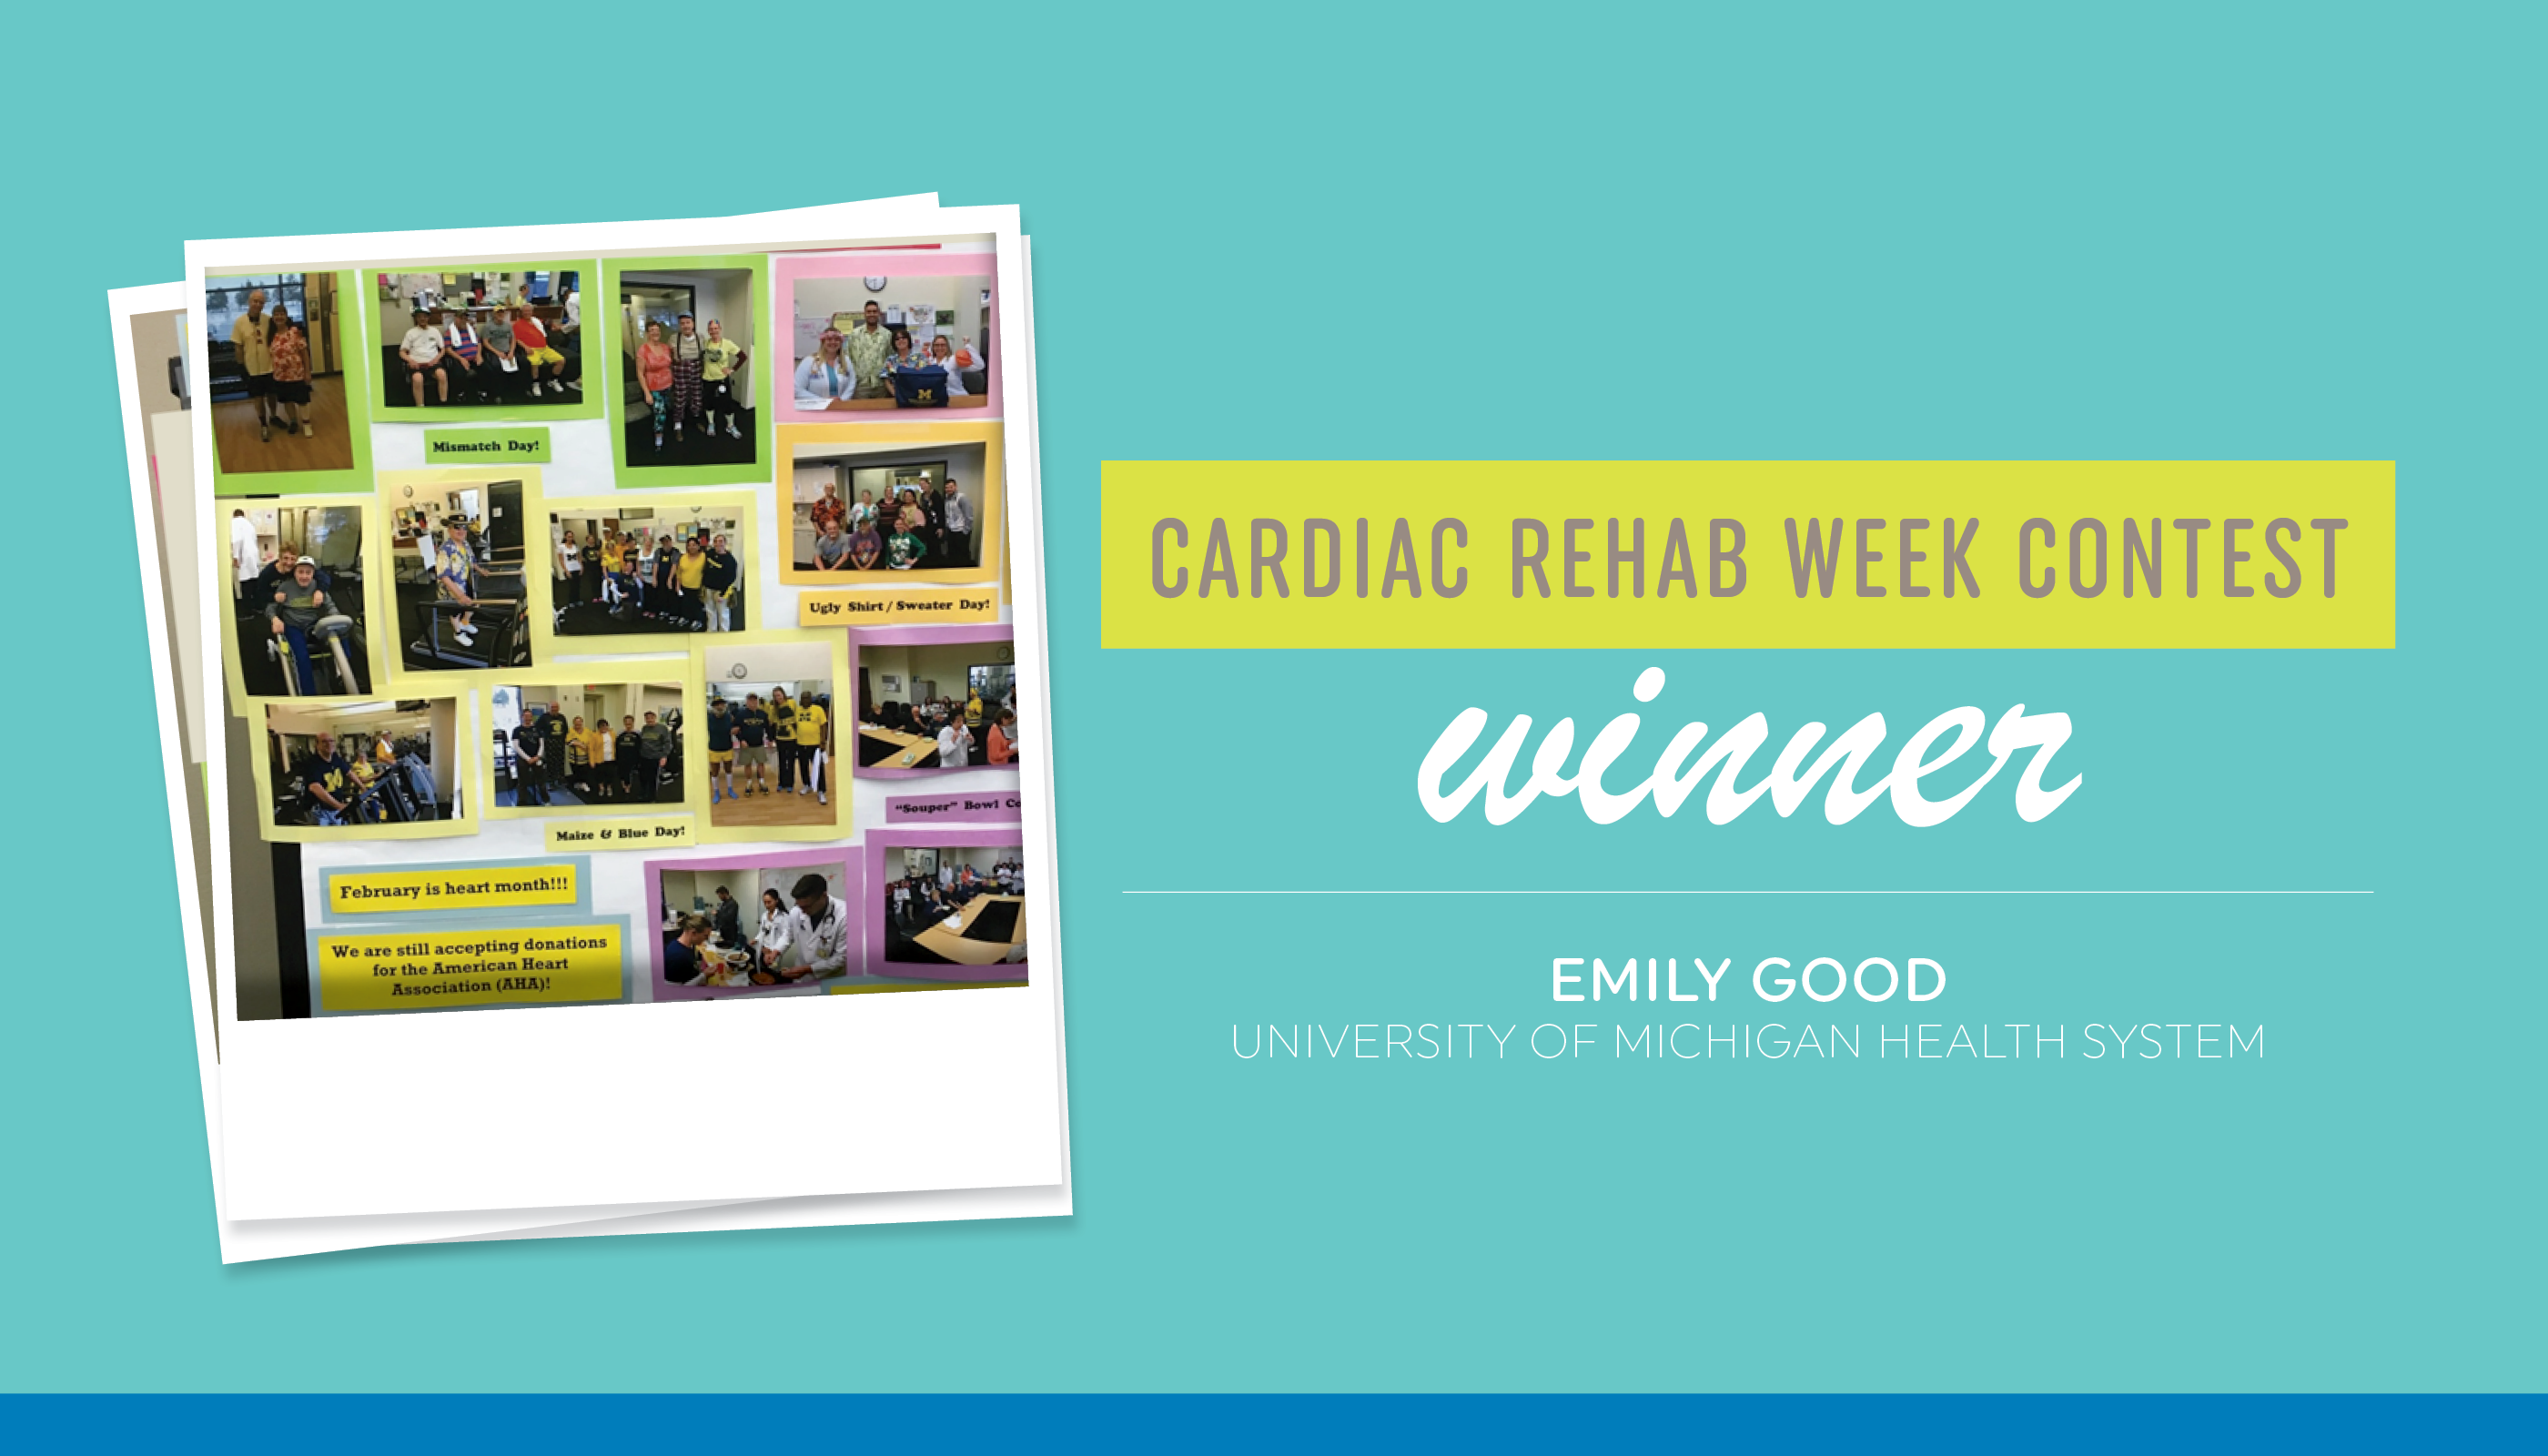 Cardiac Rehab Week Contest Winner